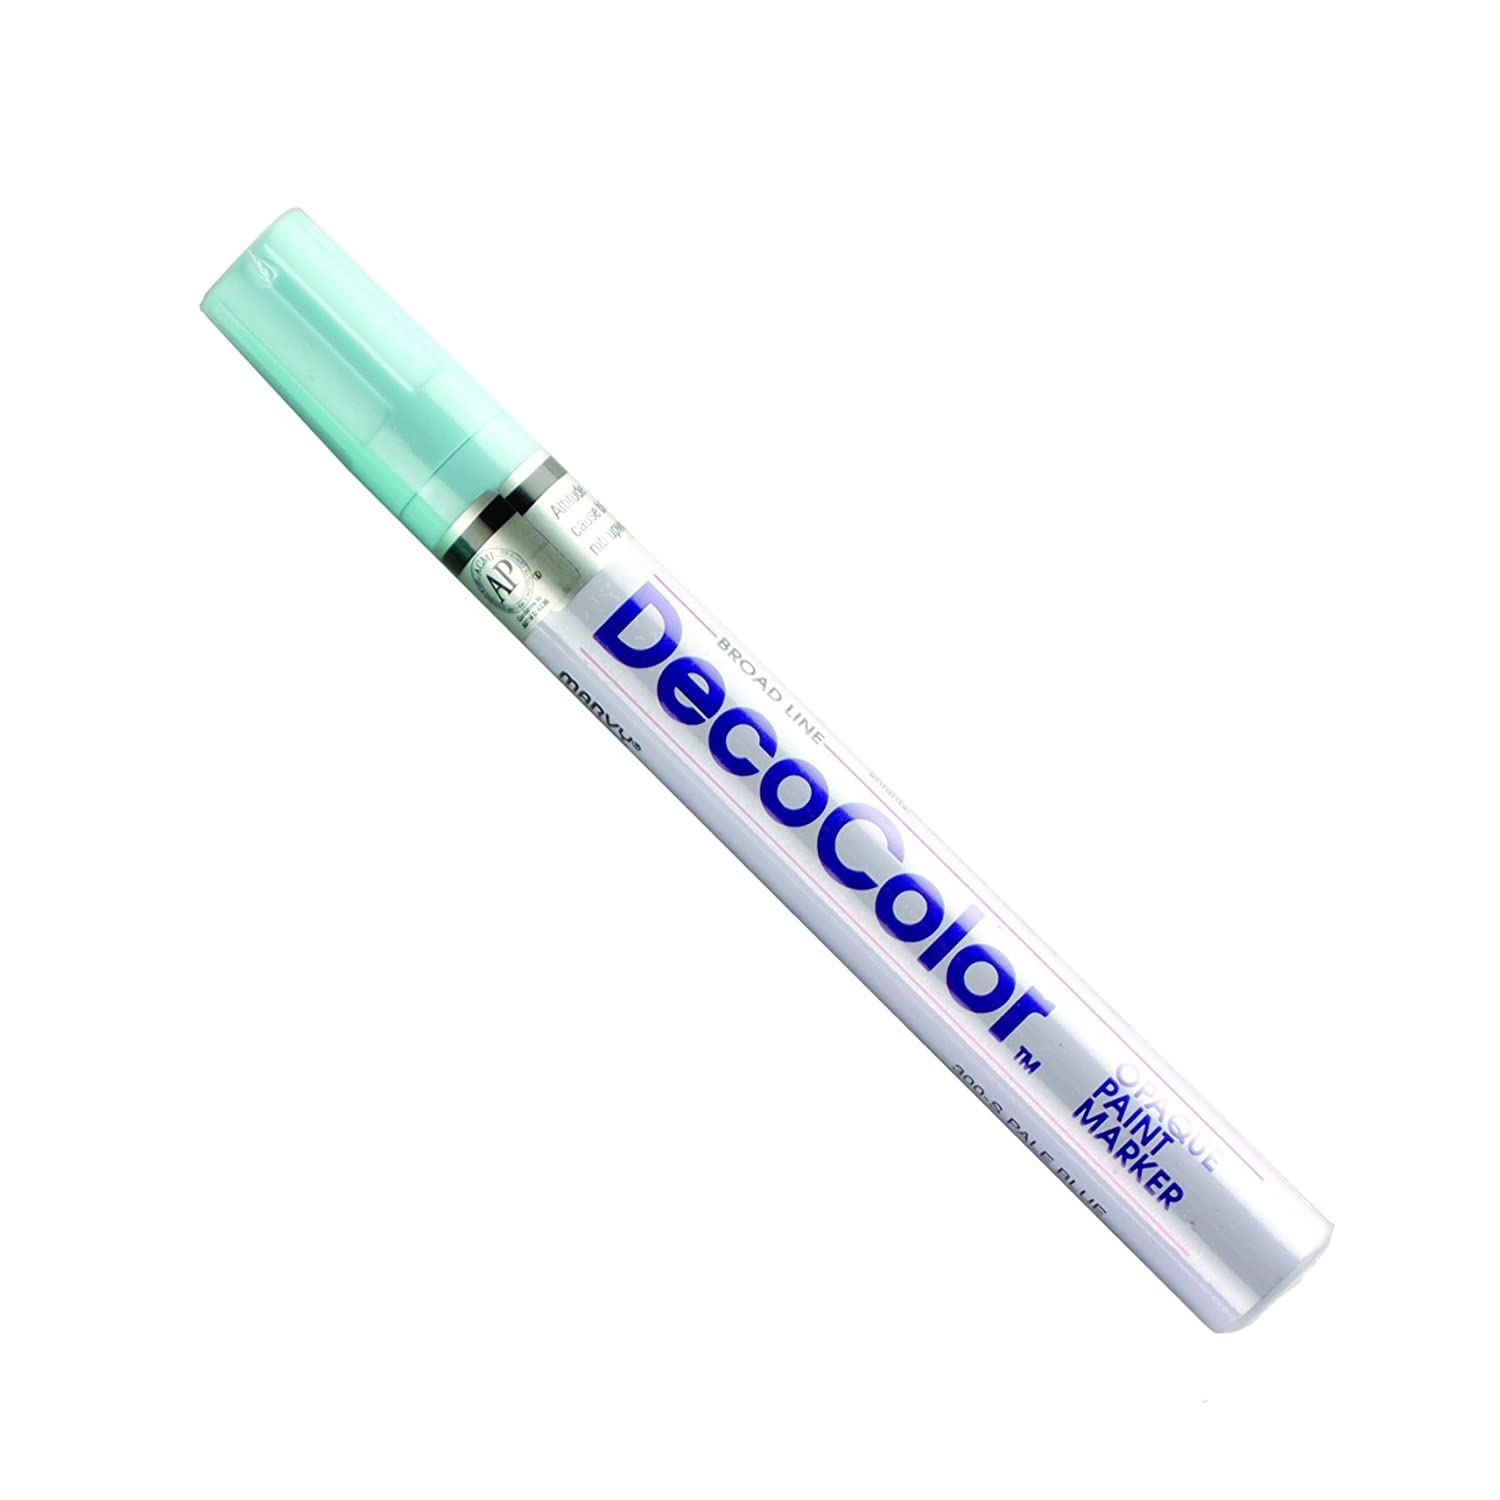 Uchida 300-C-0 Marvy Deco Color Broad Point Paint Marker, White Uchida of America Corp